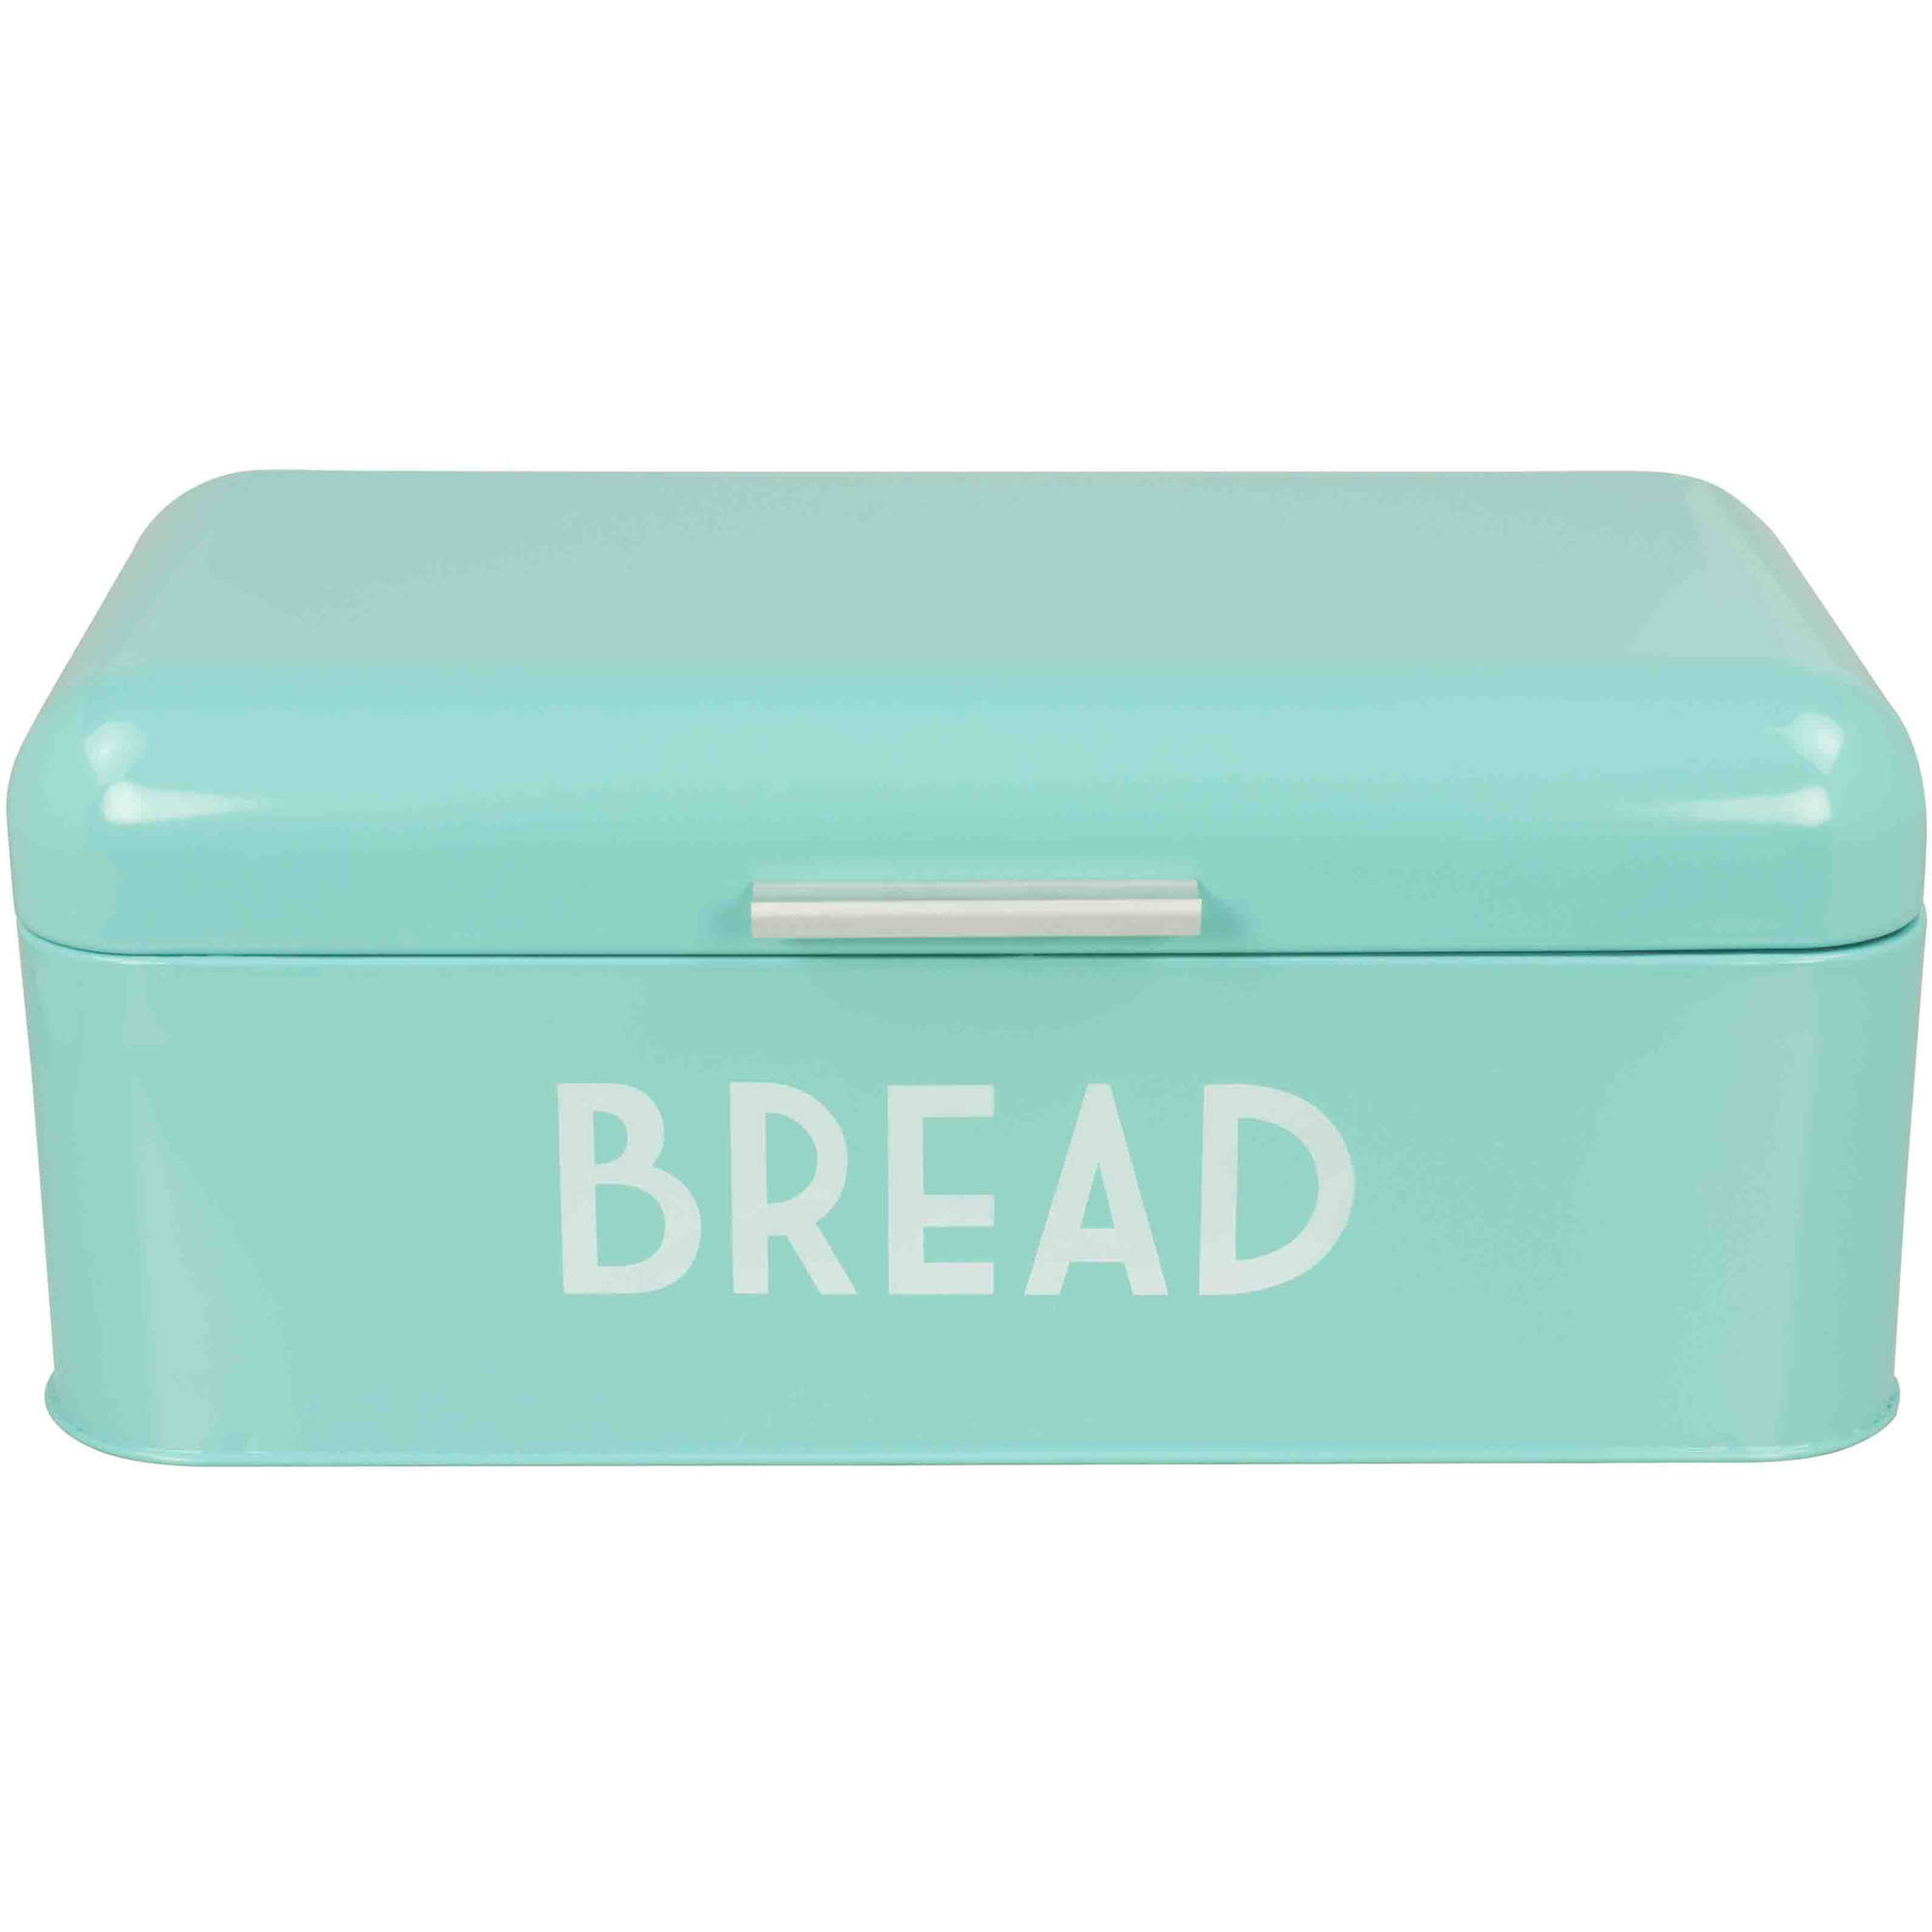 Tin bread box drawer insert - Home Basics Bread Box Turquoise